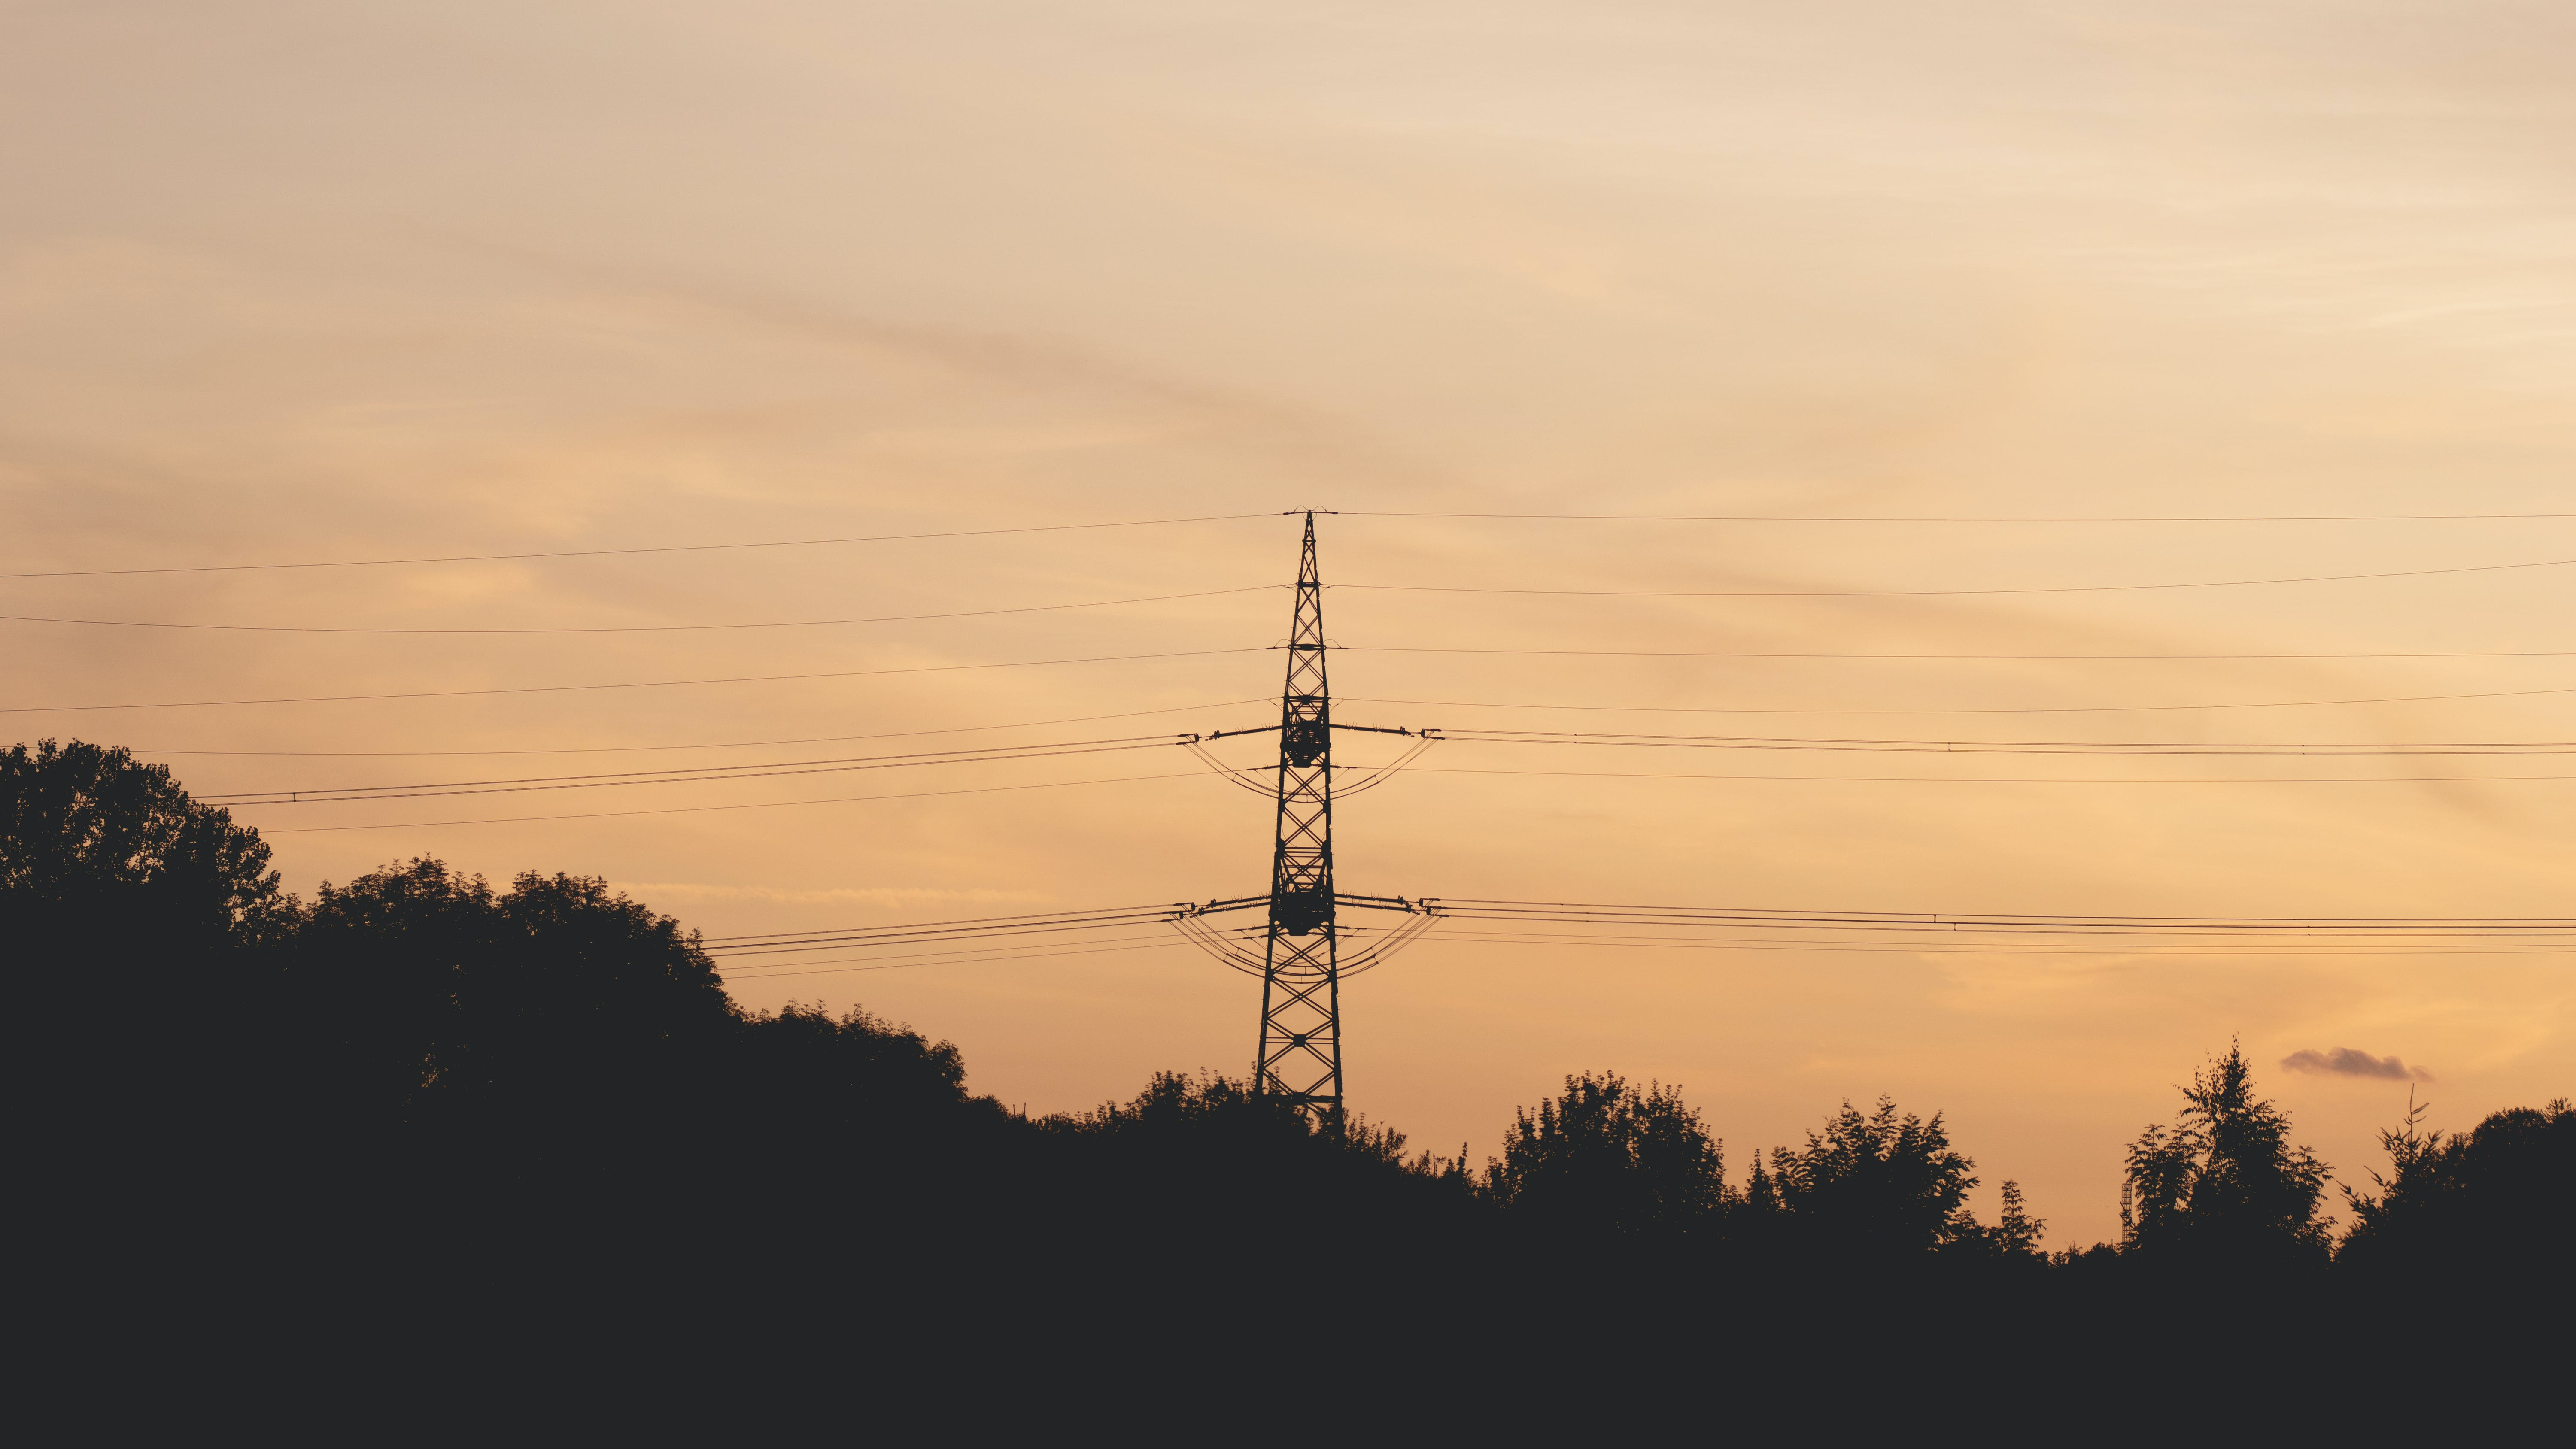 Free stock photo of evening, evening-sky, power lines, utility pole